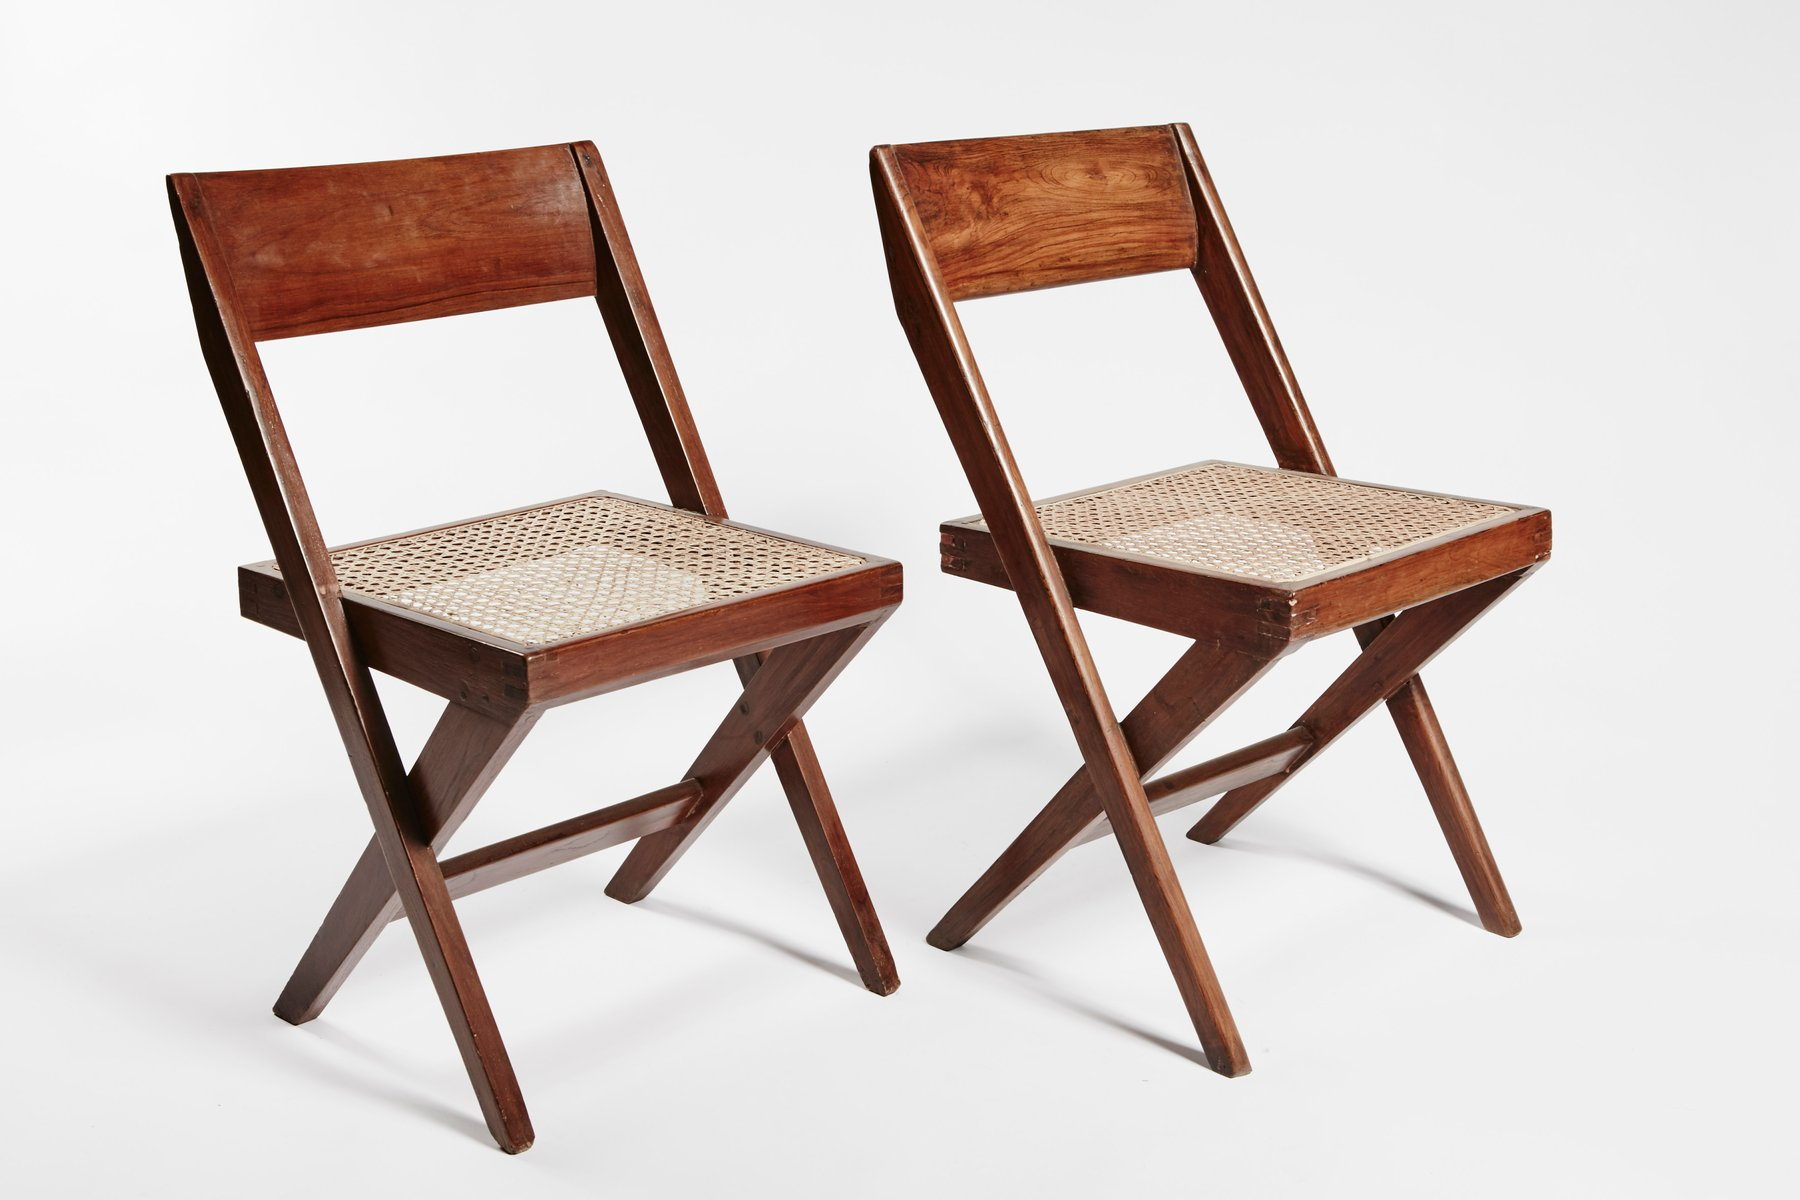 Teak and Wicker Library Chairs by Pierre Jeanneret Set of 2 for